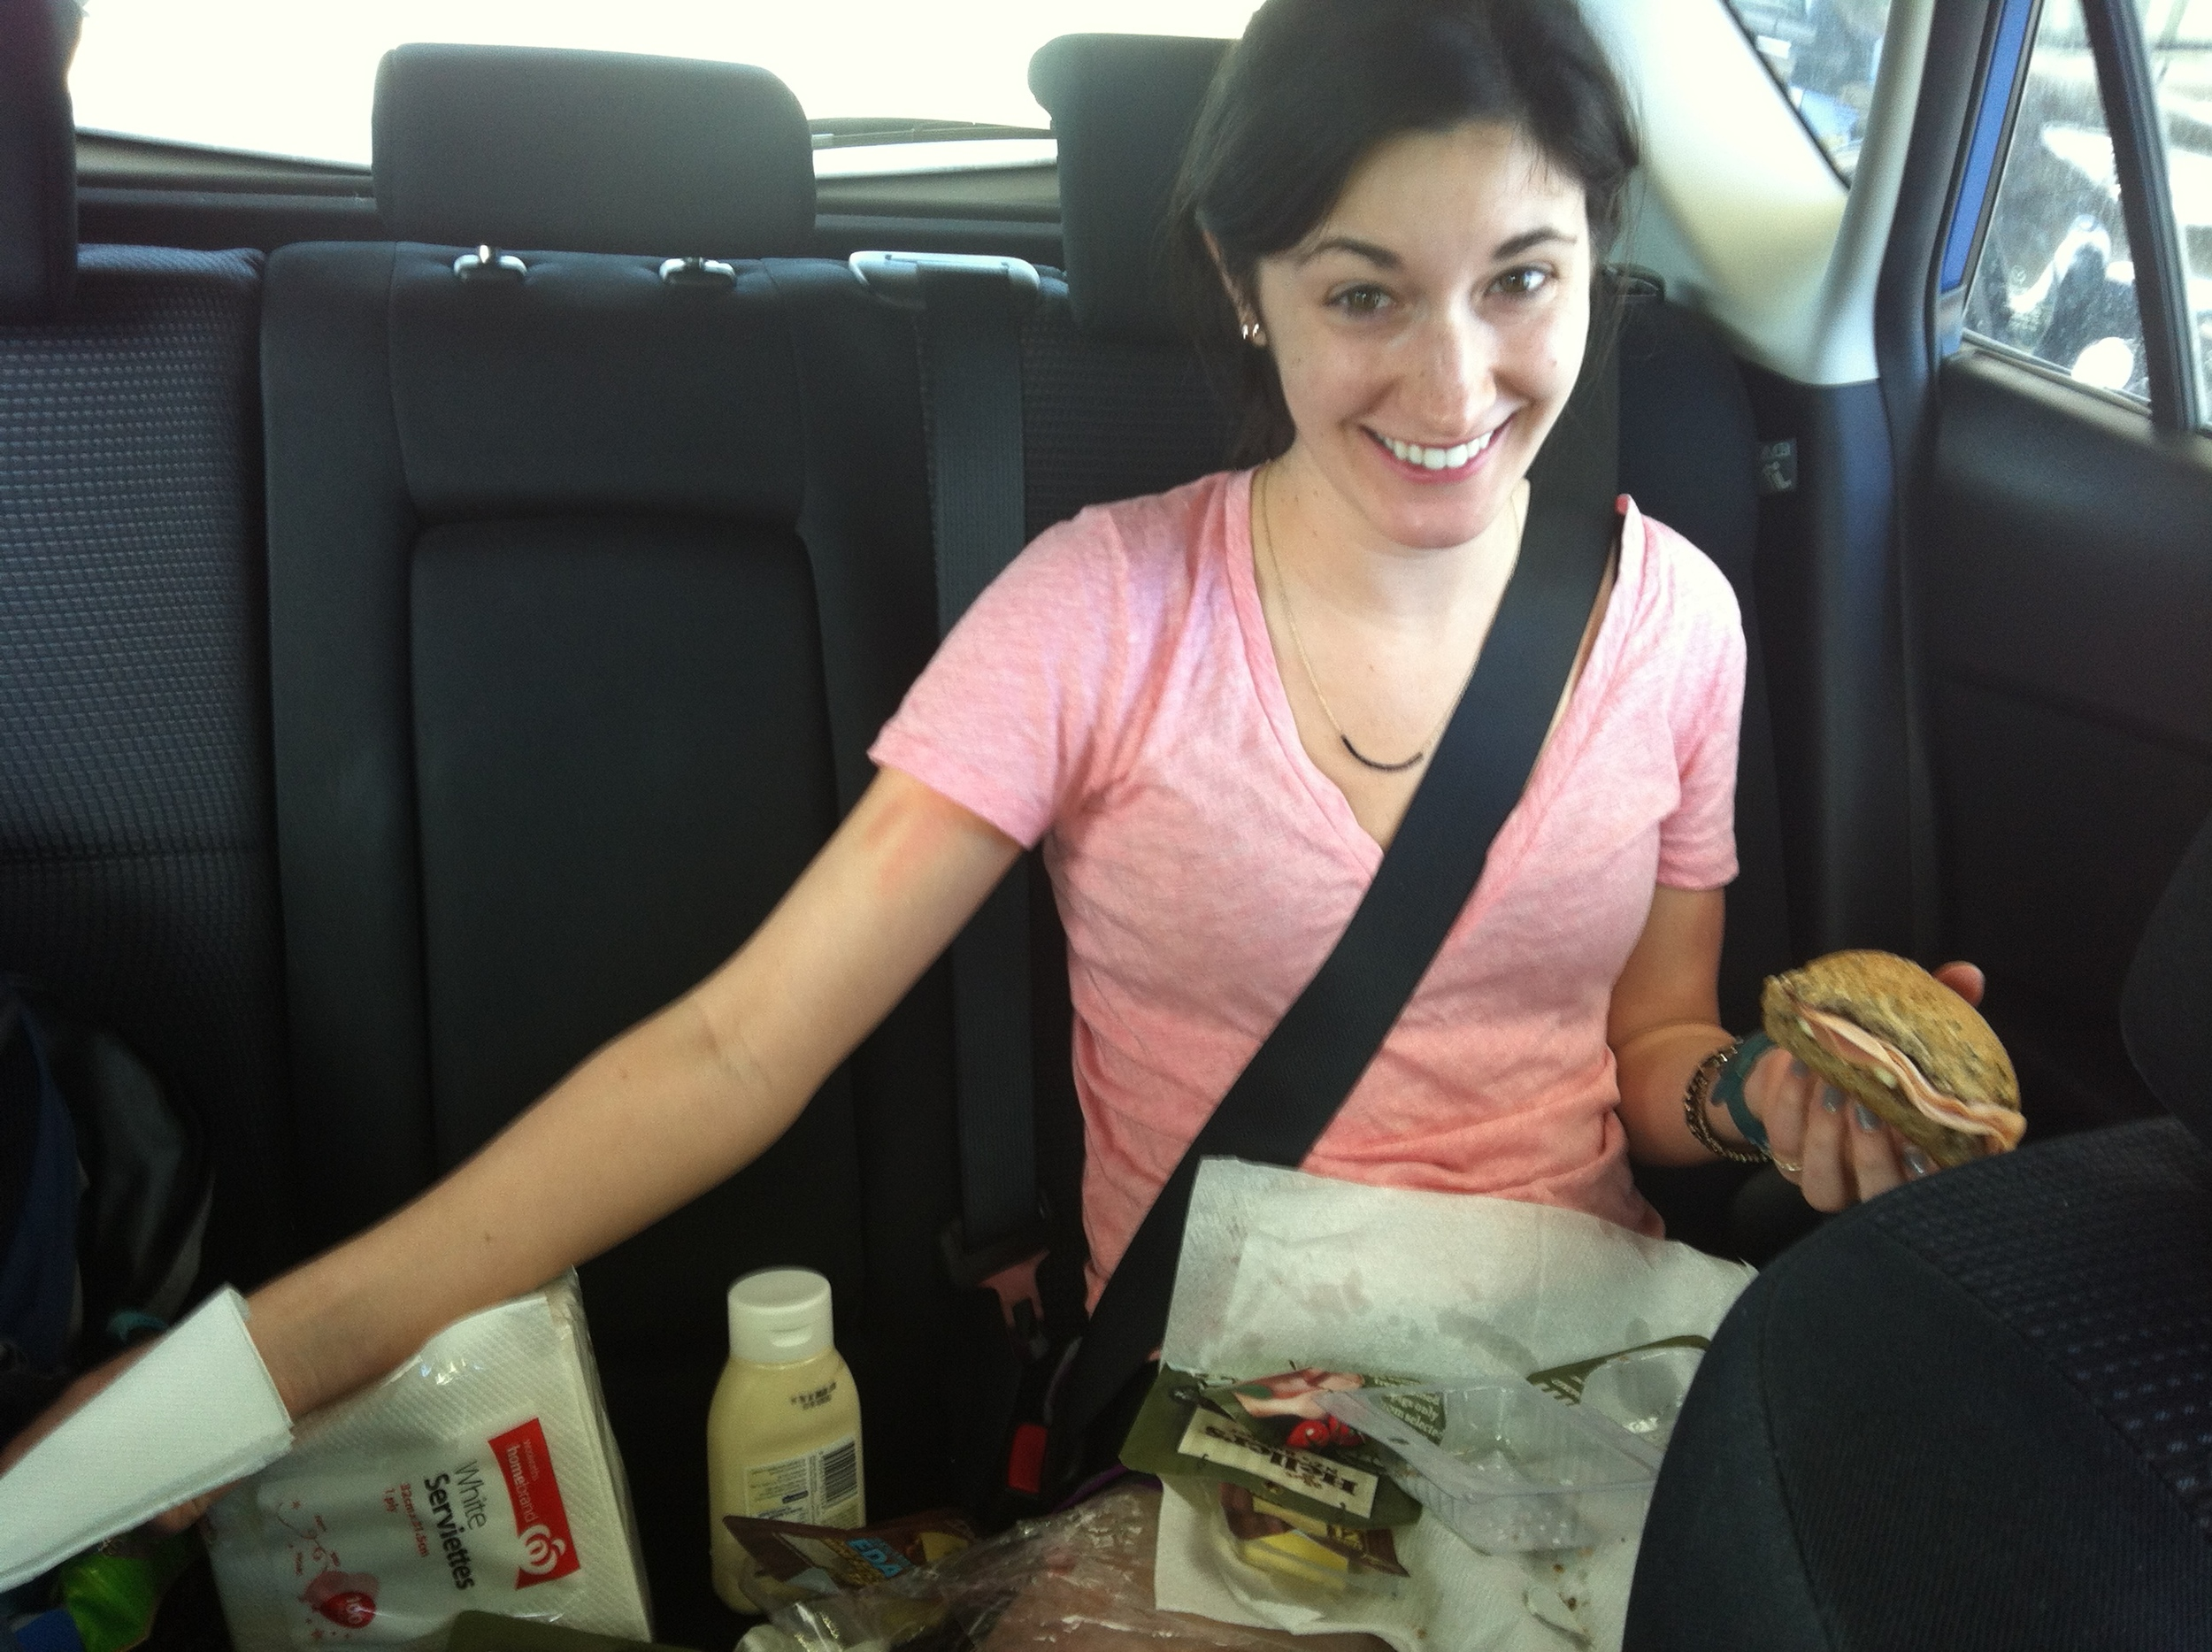 Backseat Deli is in business! On today's menu, ham and cheese sandwiches on seeded whole wheat bun, with hand-dipped (by Gabrielle) peanut-butter prezels.